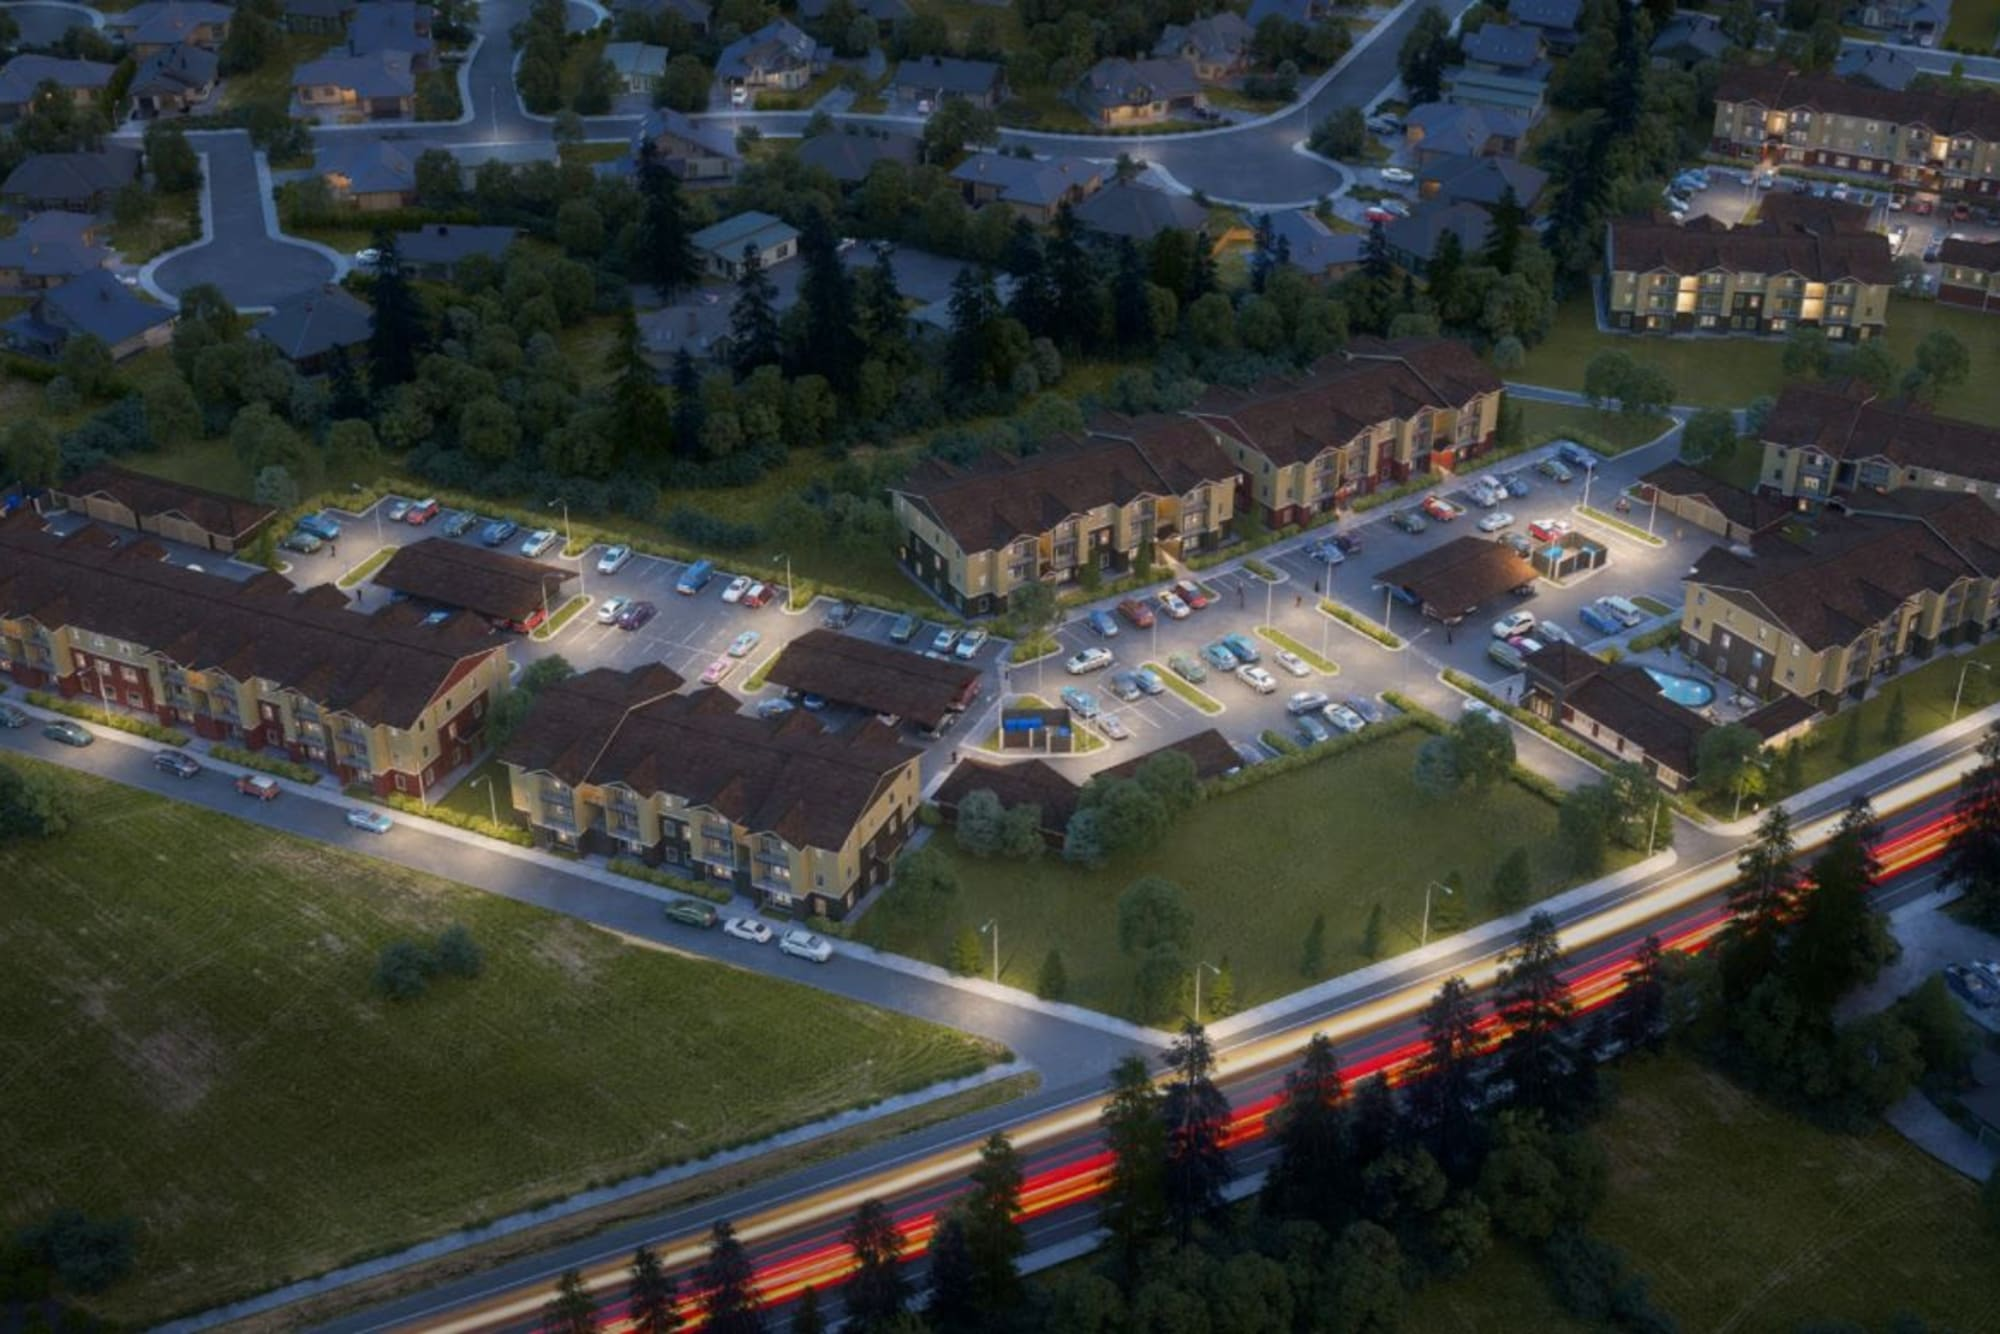 A nighttime aerial view of the apartment homes at Haven Hills in Vancouver, Washington